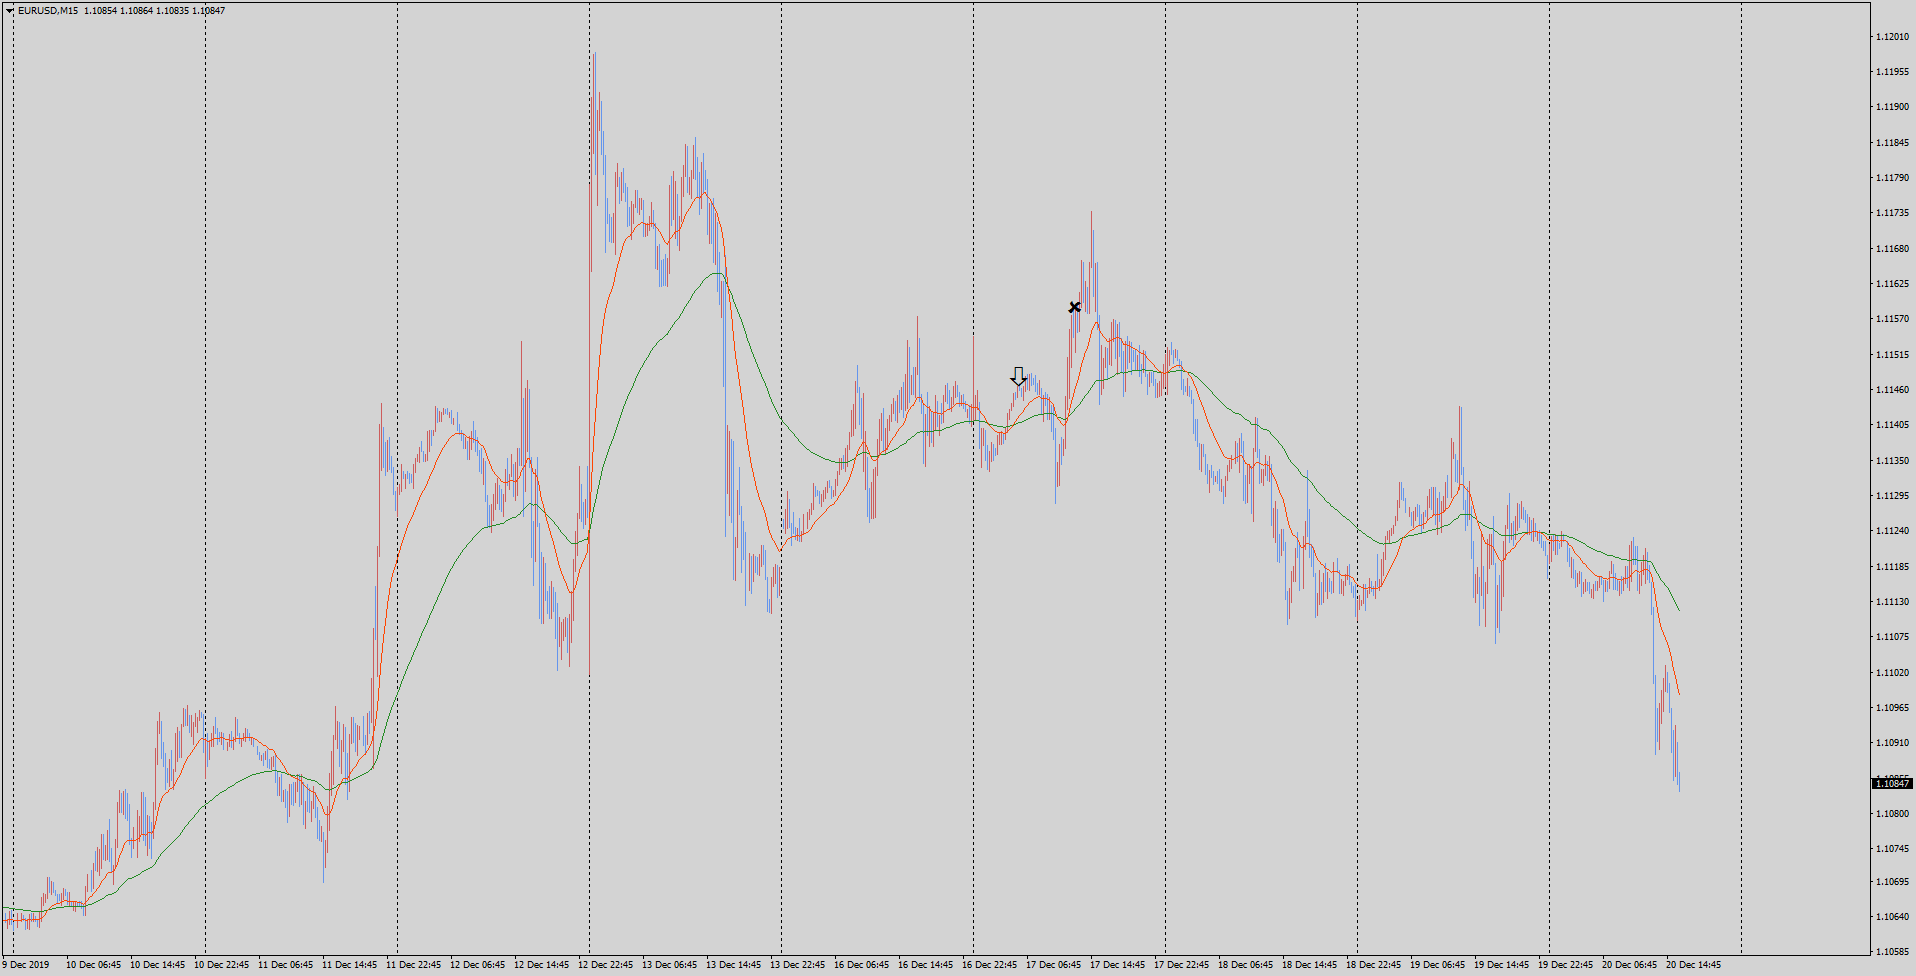 19-12-20-eurusd-m15-tradexfin-limited.png